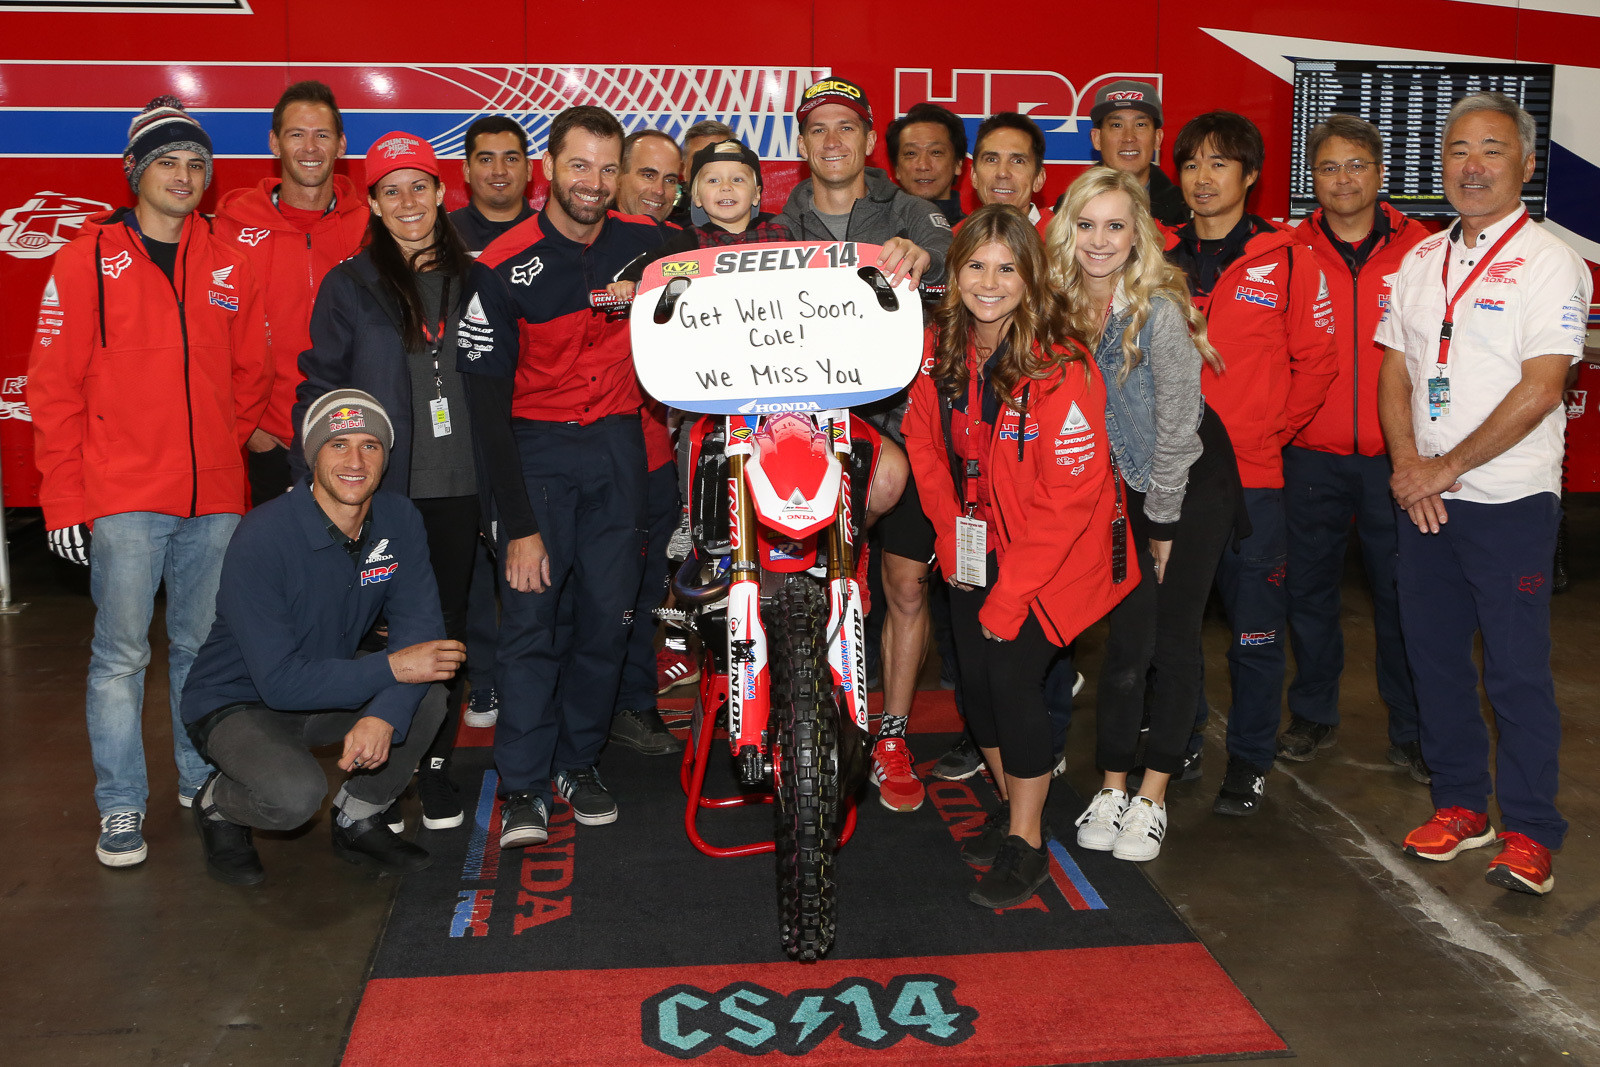 We'll second this one. The whole Honda crew got together to wish a quick return for Cole Seely after his tough crash in Tampa.